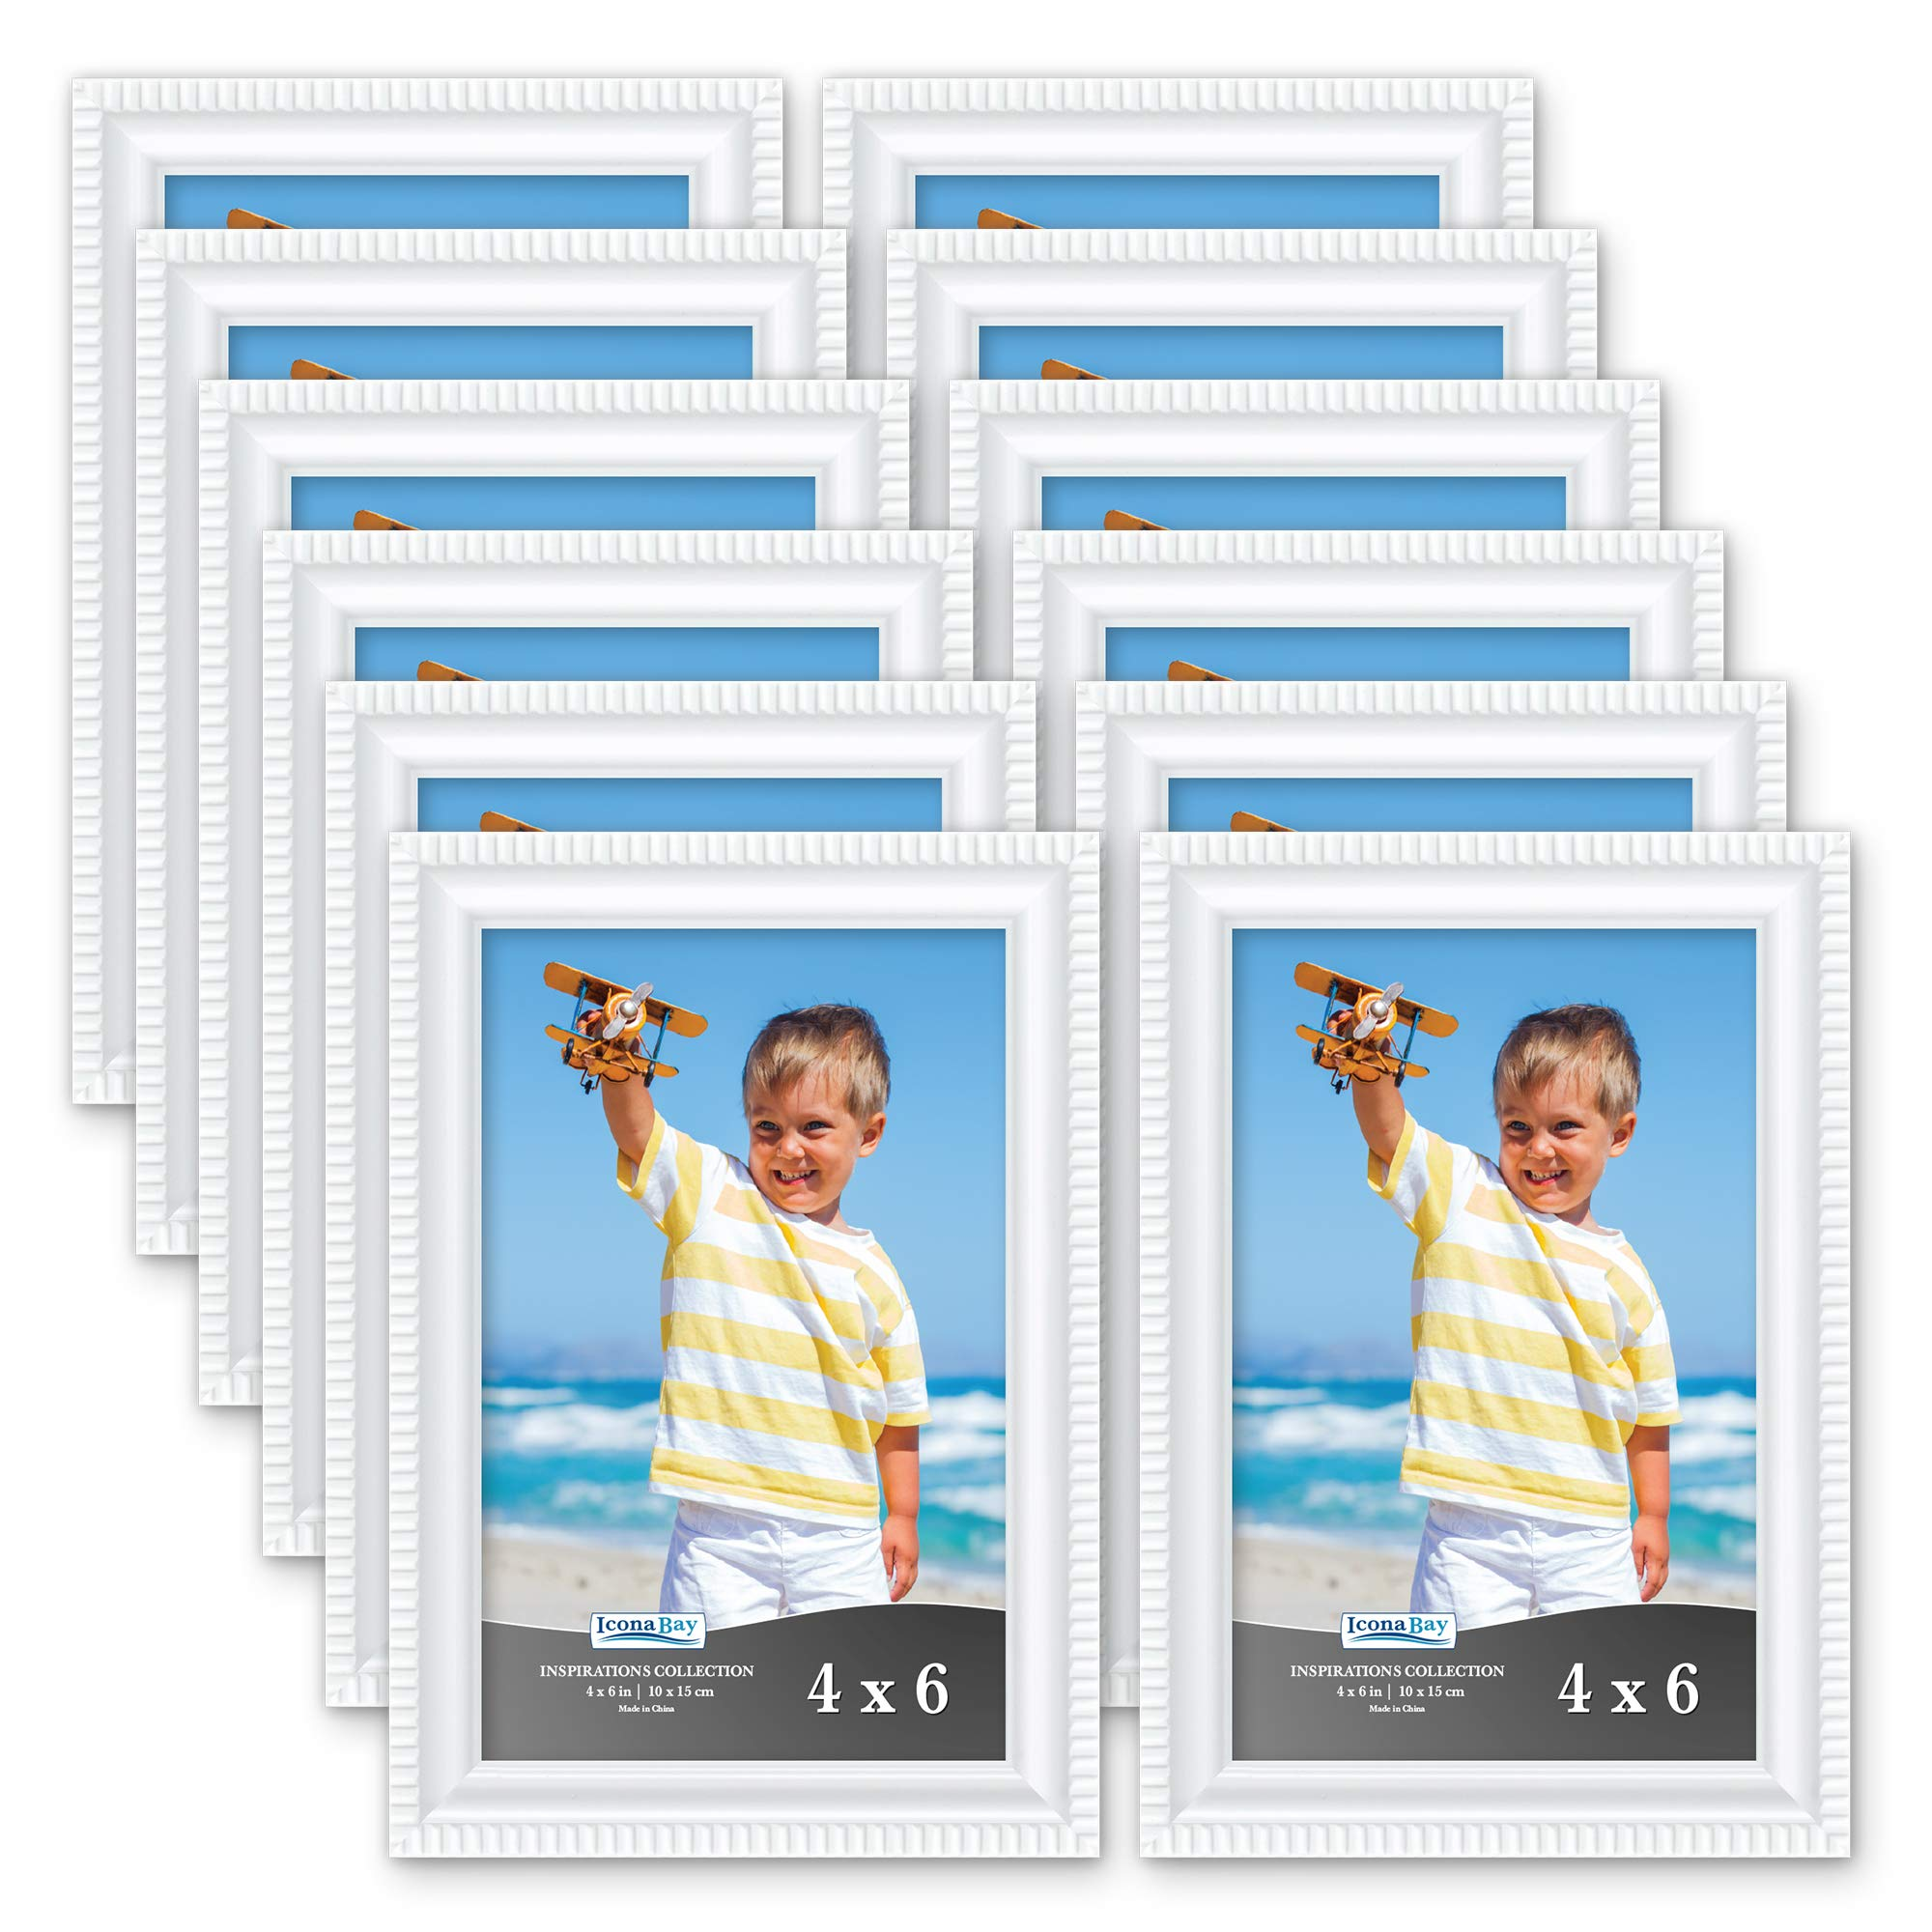 Icona Bay 4x6 Picture Frames (12 Pack, White) Picture Frame Set, Wall Mount or Table Top, Set of 12 Inspirations Collection by Icona Bay